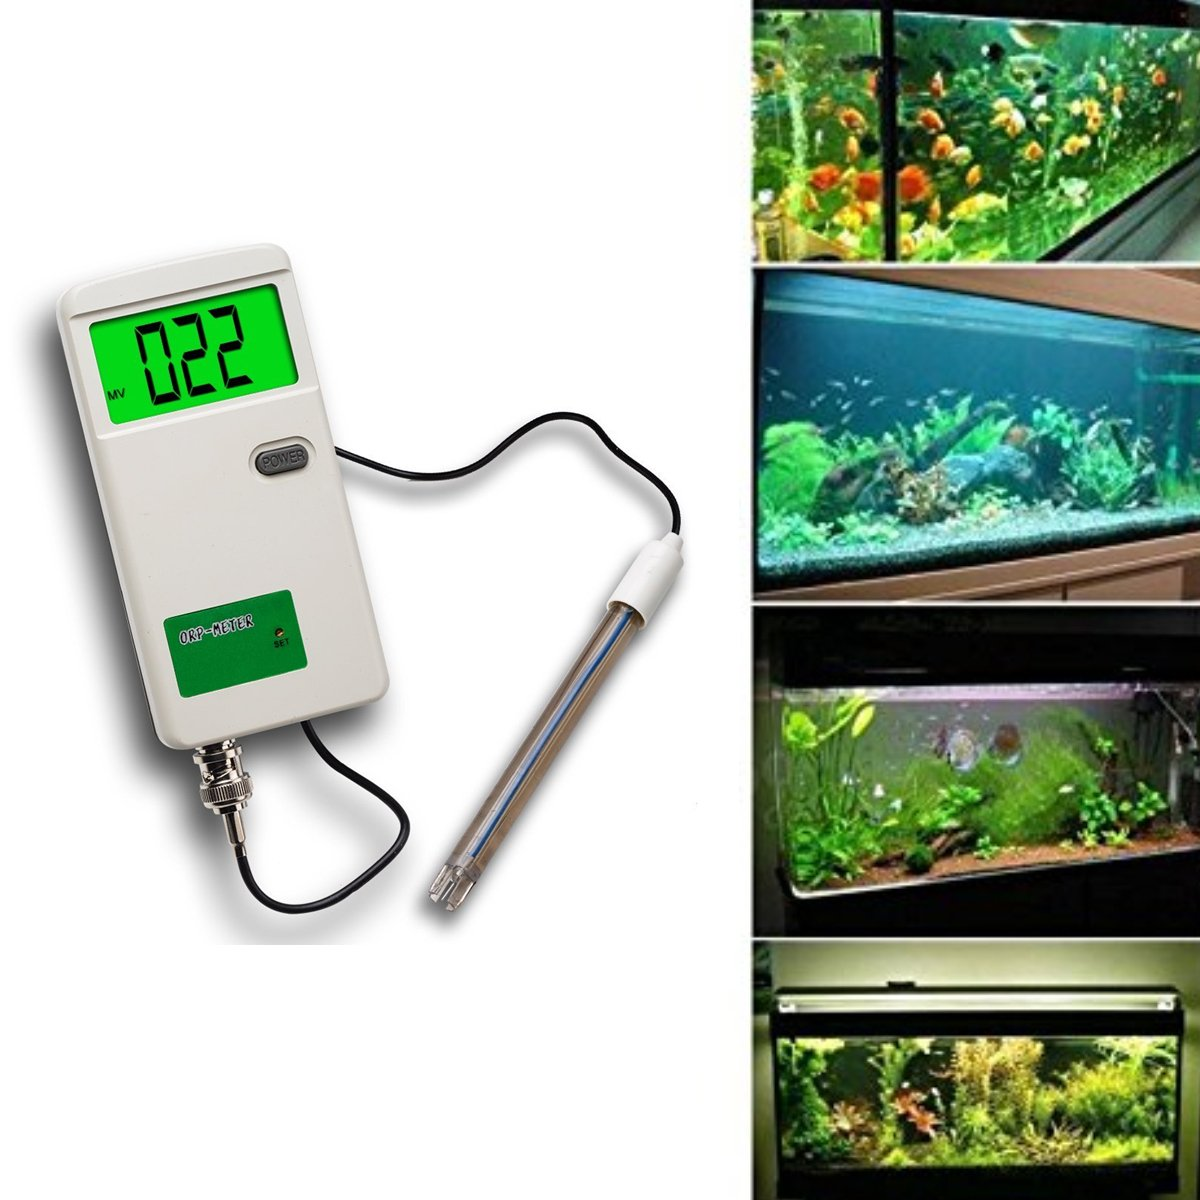 PH Monitor Meter Digital - QIYAT Portable Backlight LCD Display ph Tester Water Quality with Replaceable BNC Adapter for Aquarium, Wine Urine, Hydroponic 0C-50C Monitor (pH-3012)